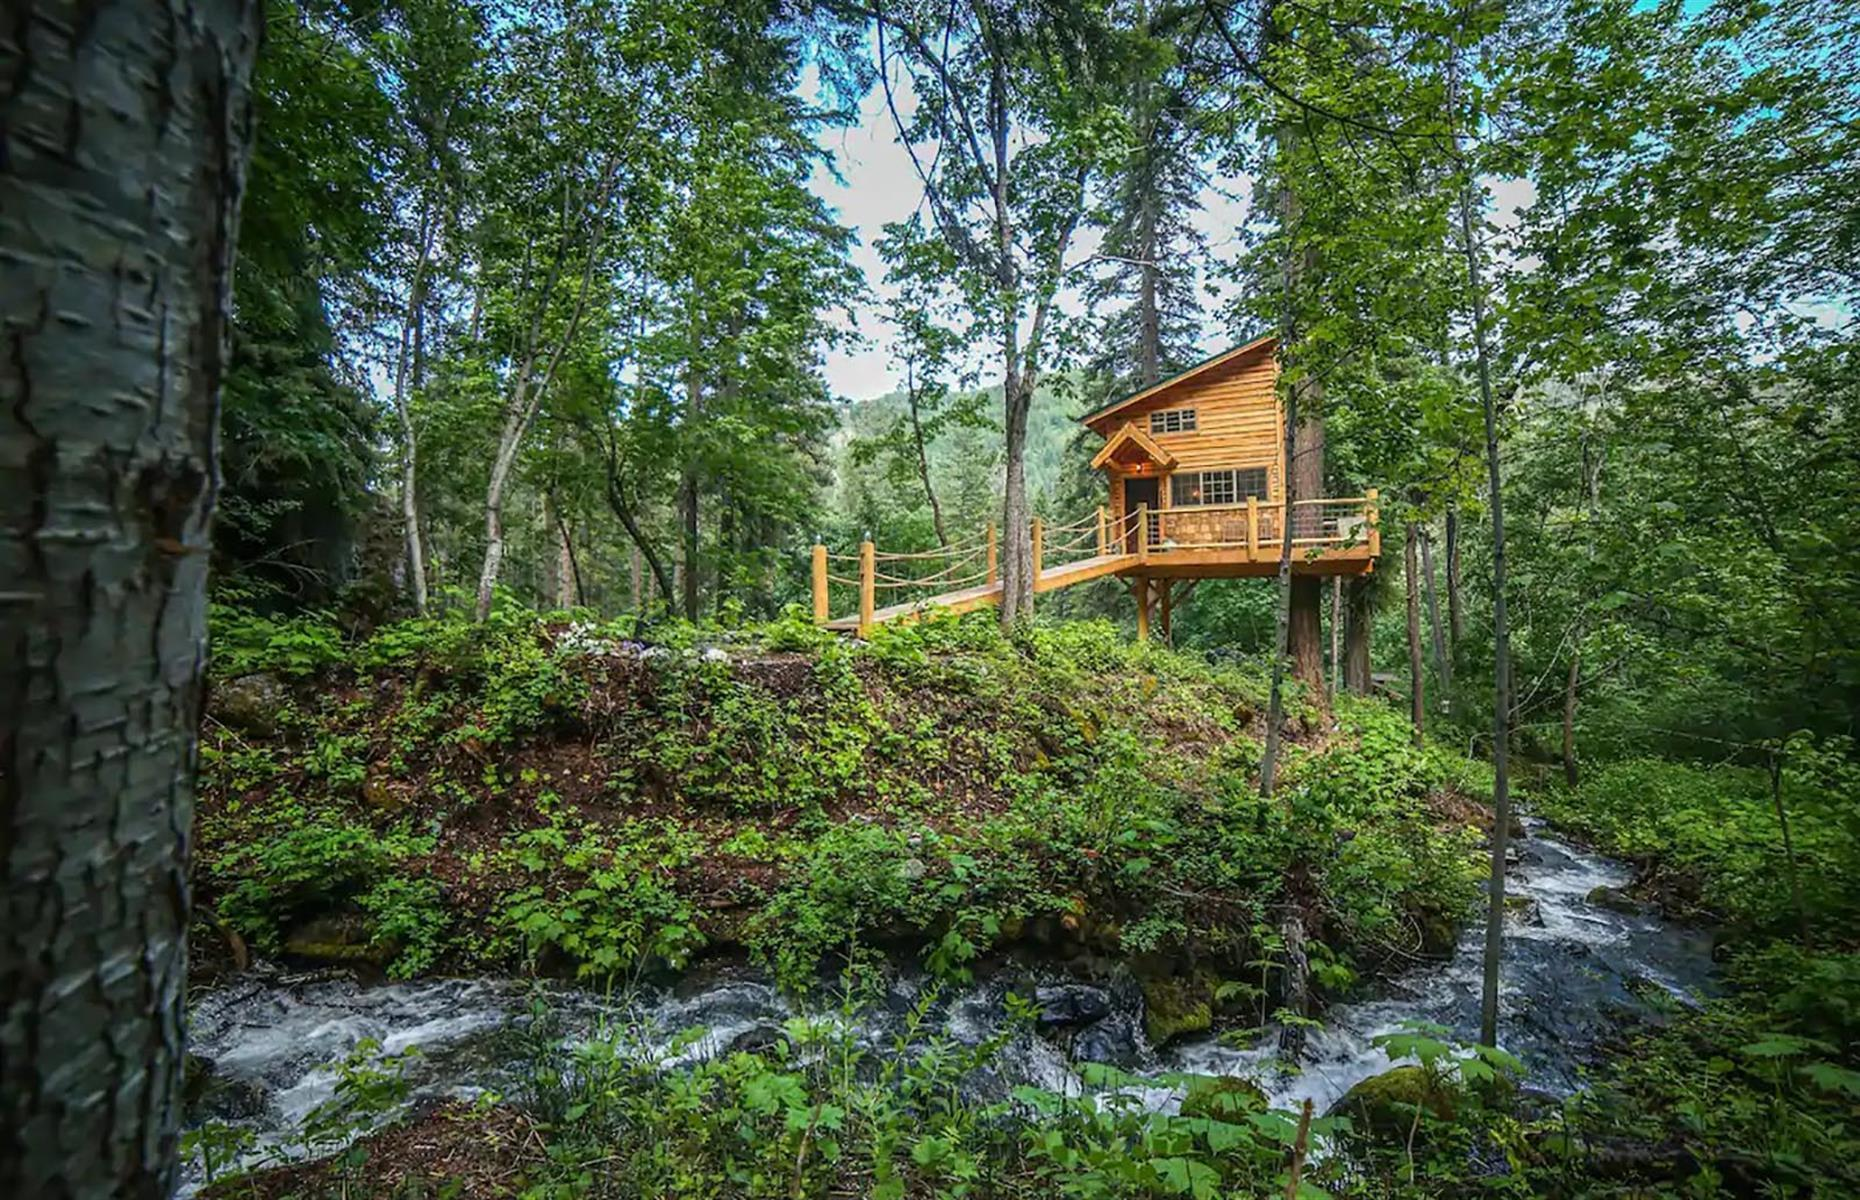 Slide 49 of 52: Yes, there are plenty of stunning penthouses in Seattle with ocean and mountain views, but this treehouse escape looks like something out of a fairy tale. Surrounded by lush green forest and located right above the Hansel Creek, the one-bedroom timber house has a king-sized bed in the loft, a kitchen with all the essentials and a fire pit to toast marshmallows in the evening. There are opportunities to hike, bike, fish or even go white-water rafting in the surrounding area.